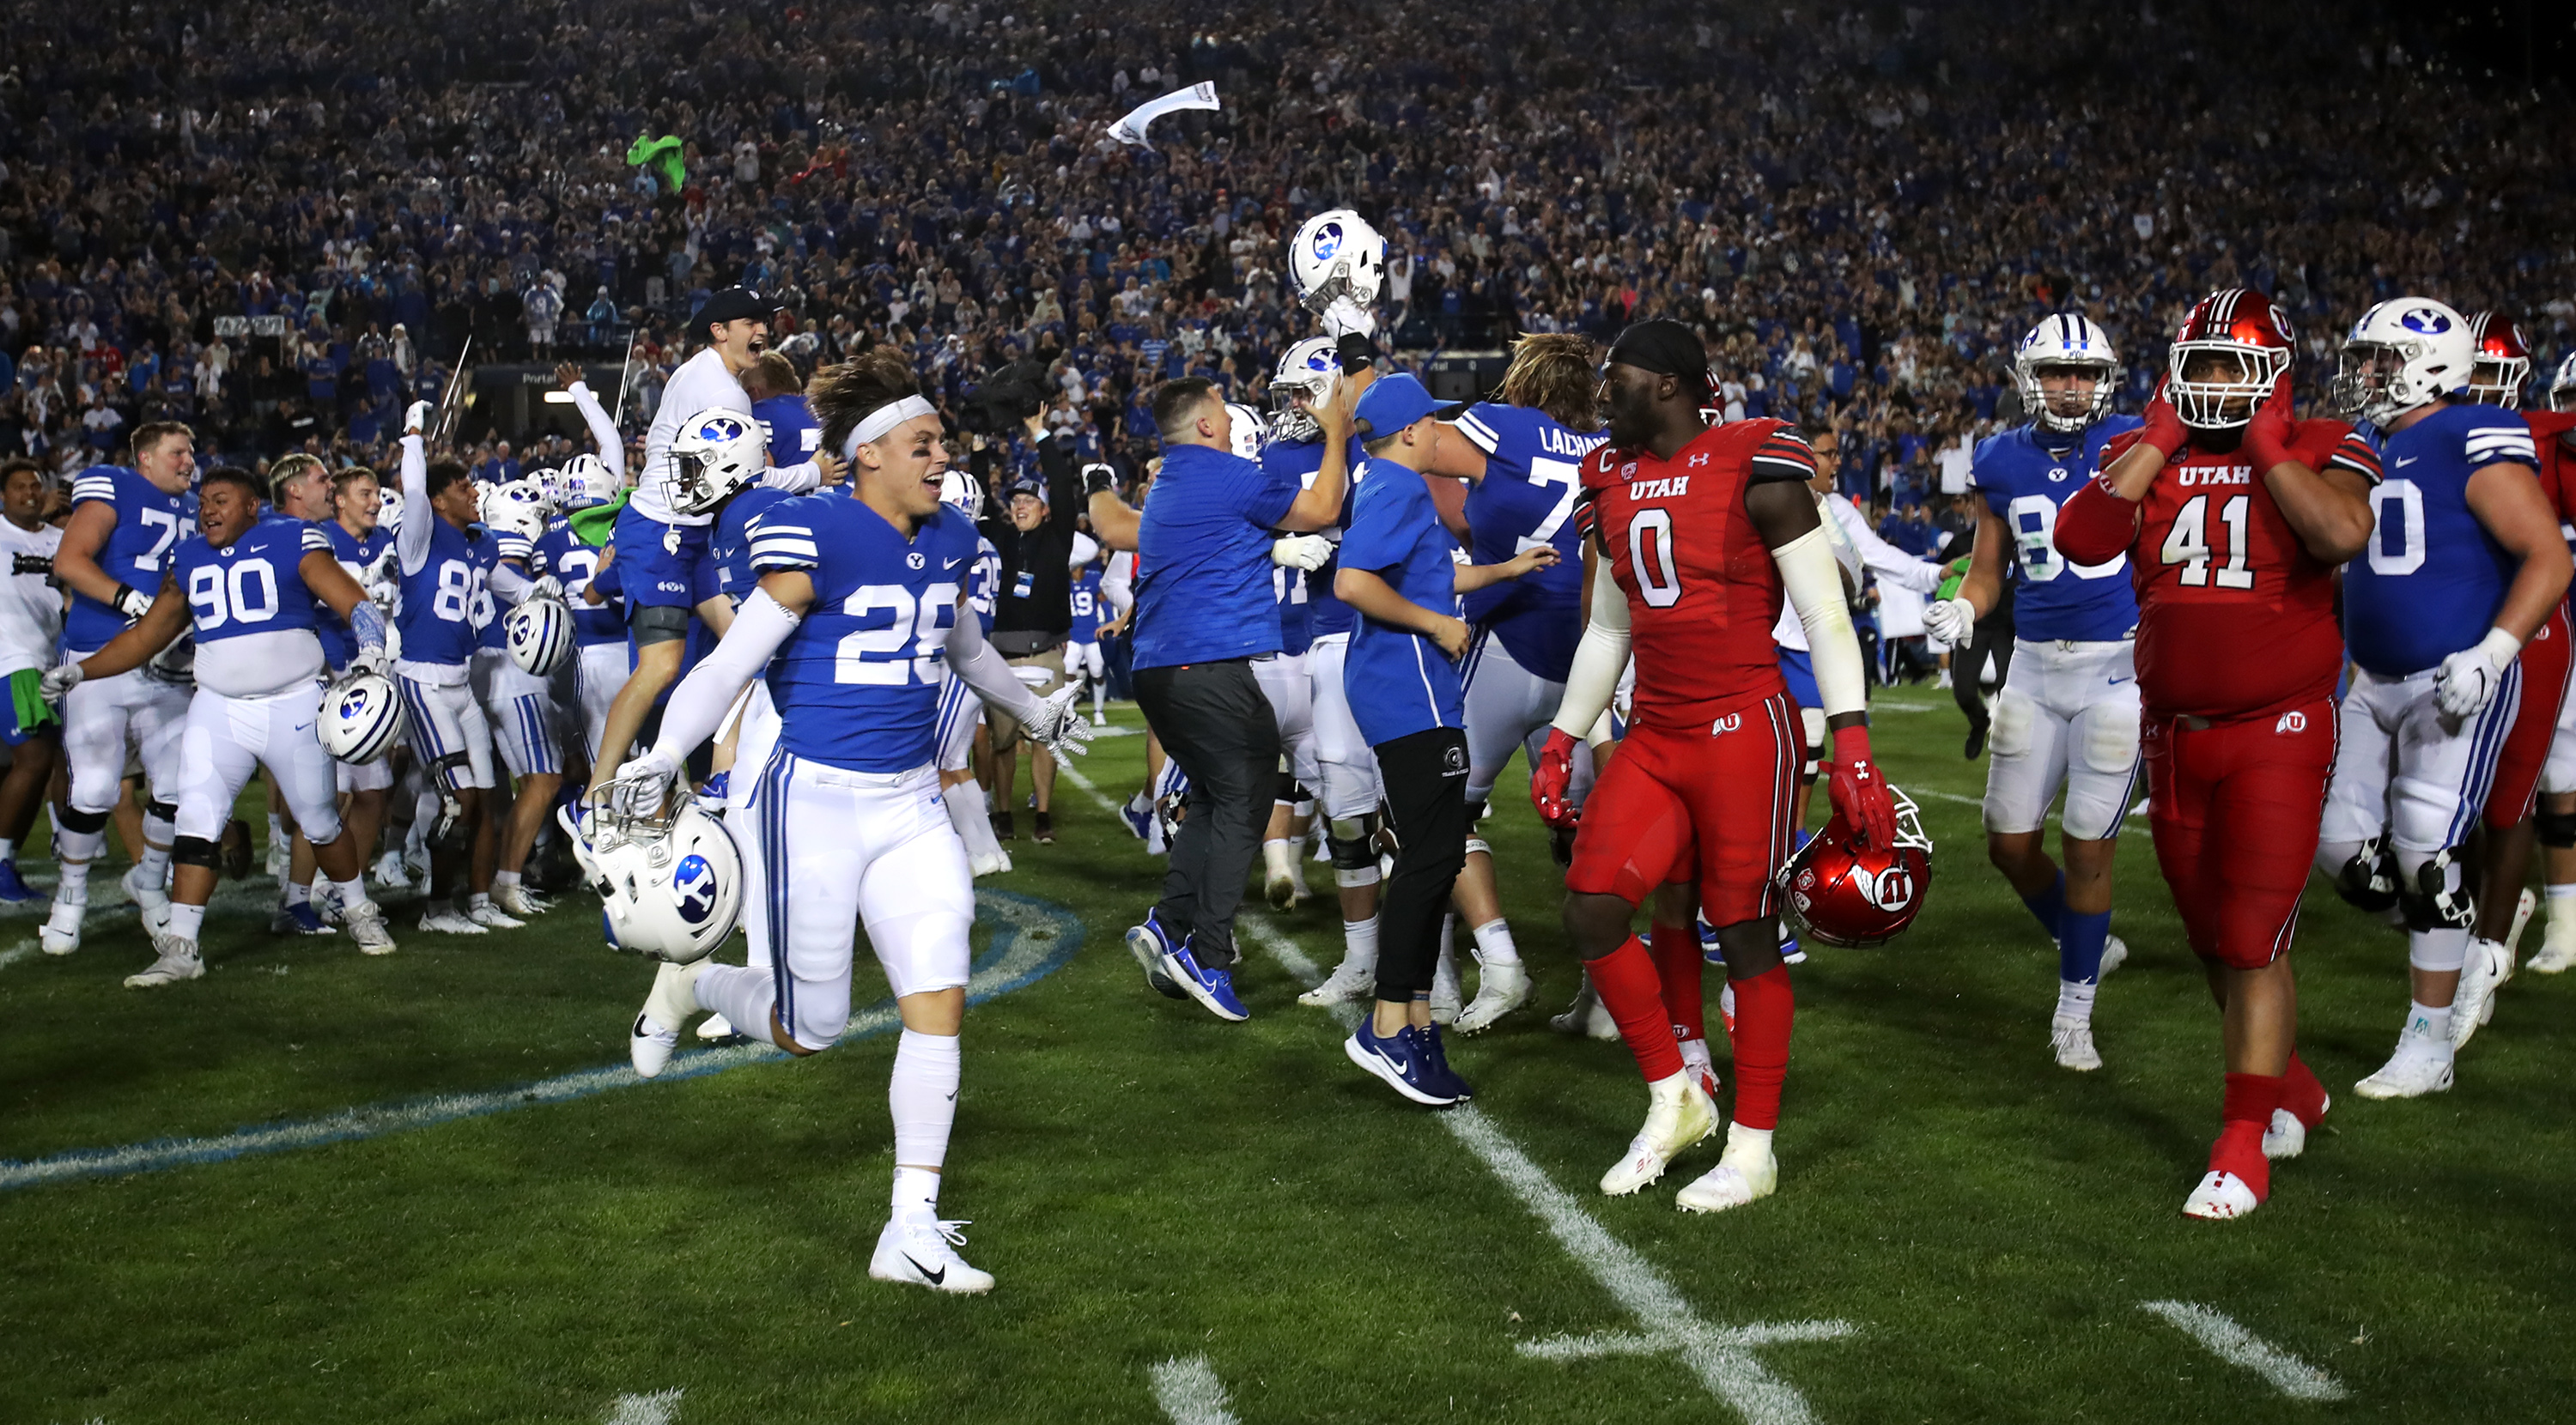 BYU players celebrate and Utah players look for the exit as the crowd rushes the field